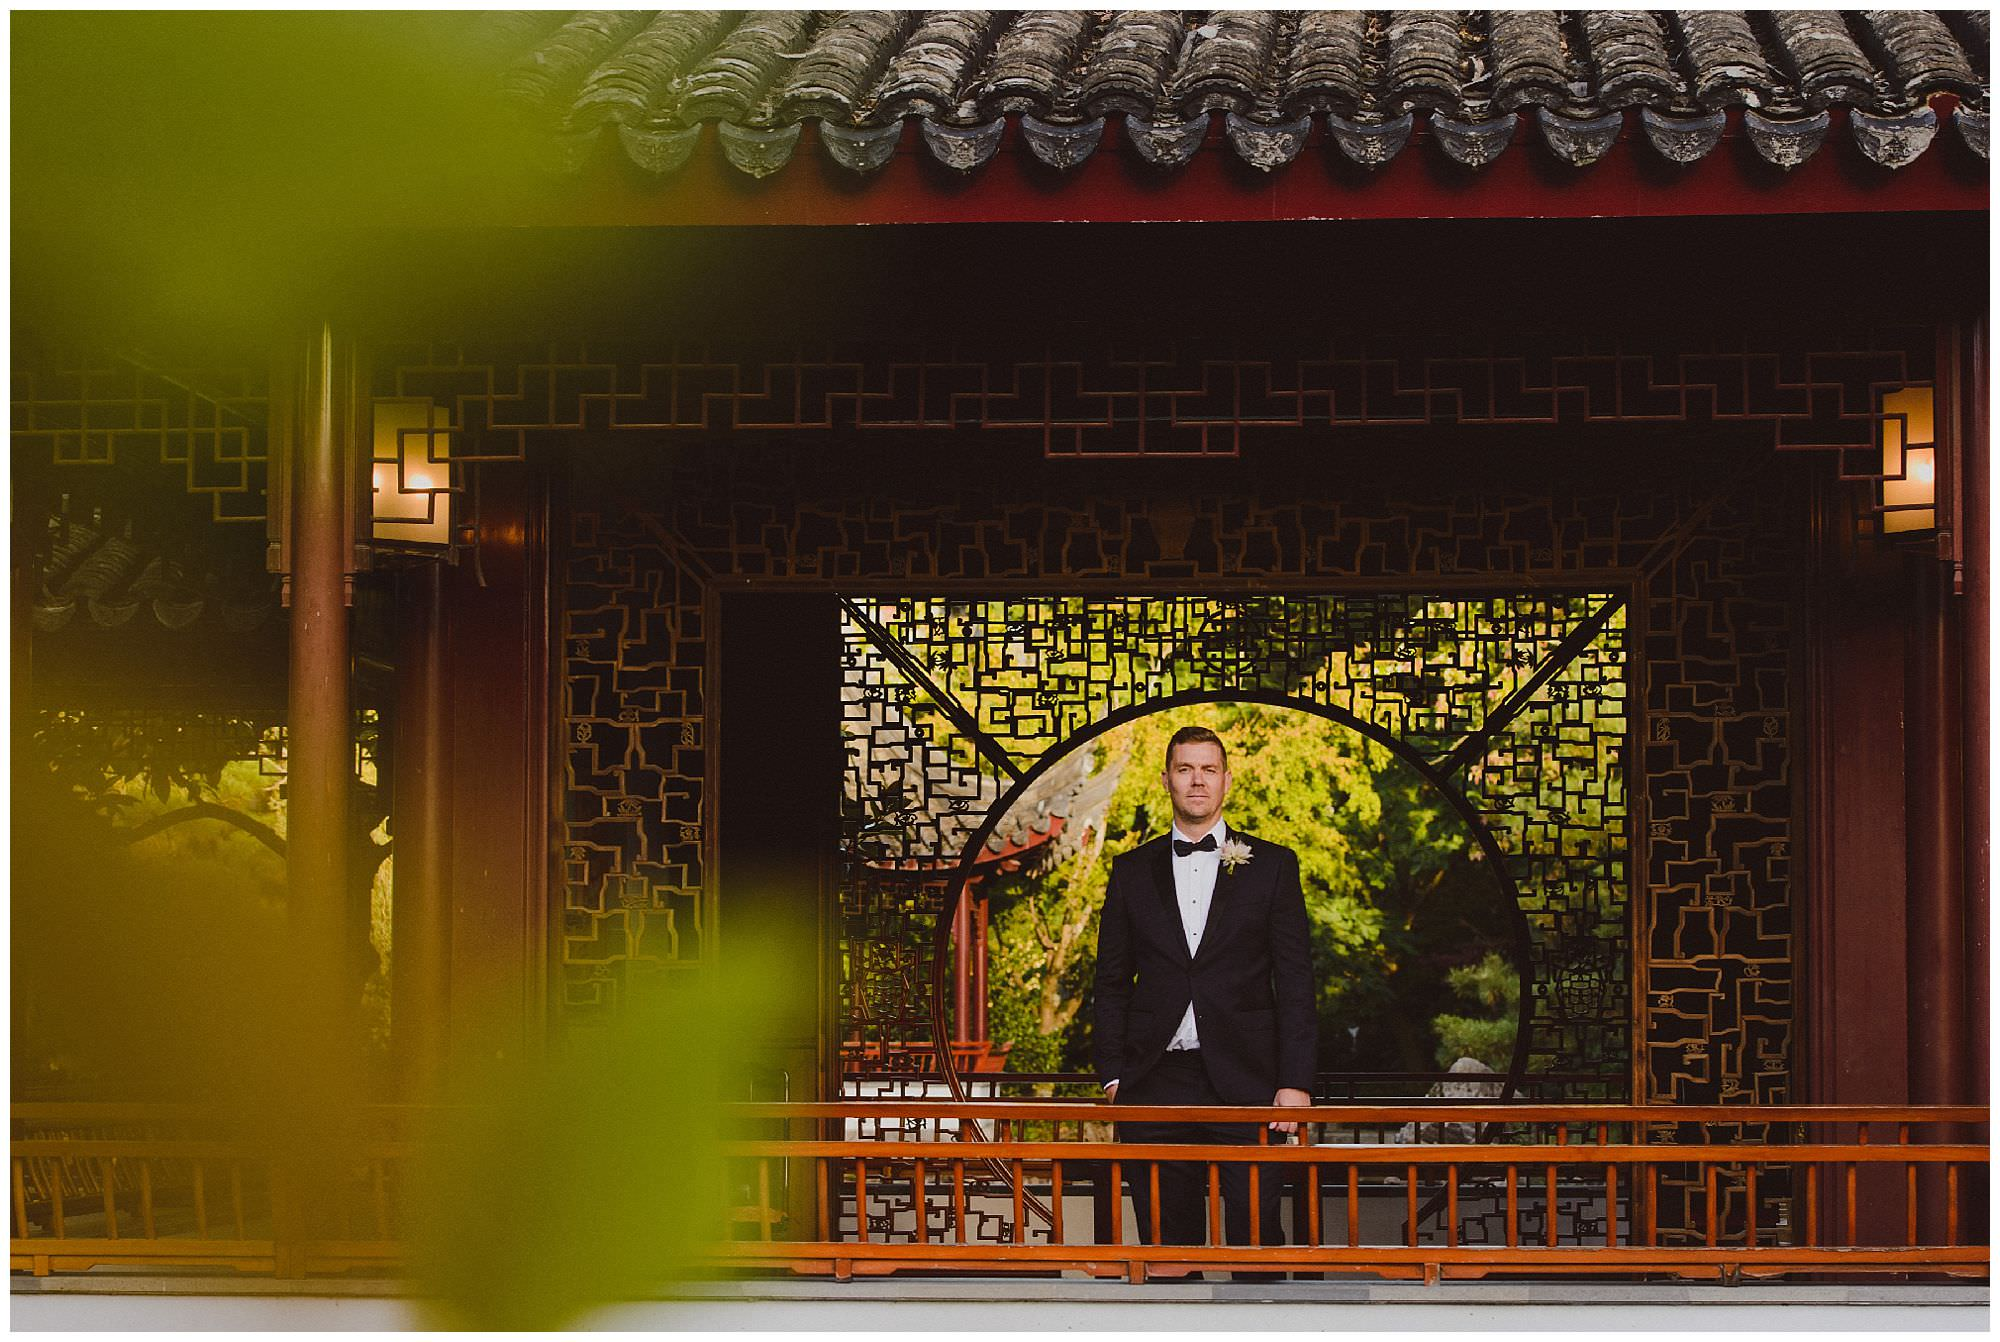 Groom in classic black tie suit stands in Dr. Sun Yat-Sen Classical Chinese Gardens at sunset after his intimate wedding, Vancouver wedding photographer